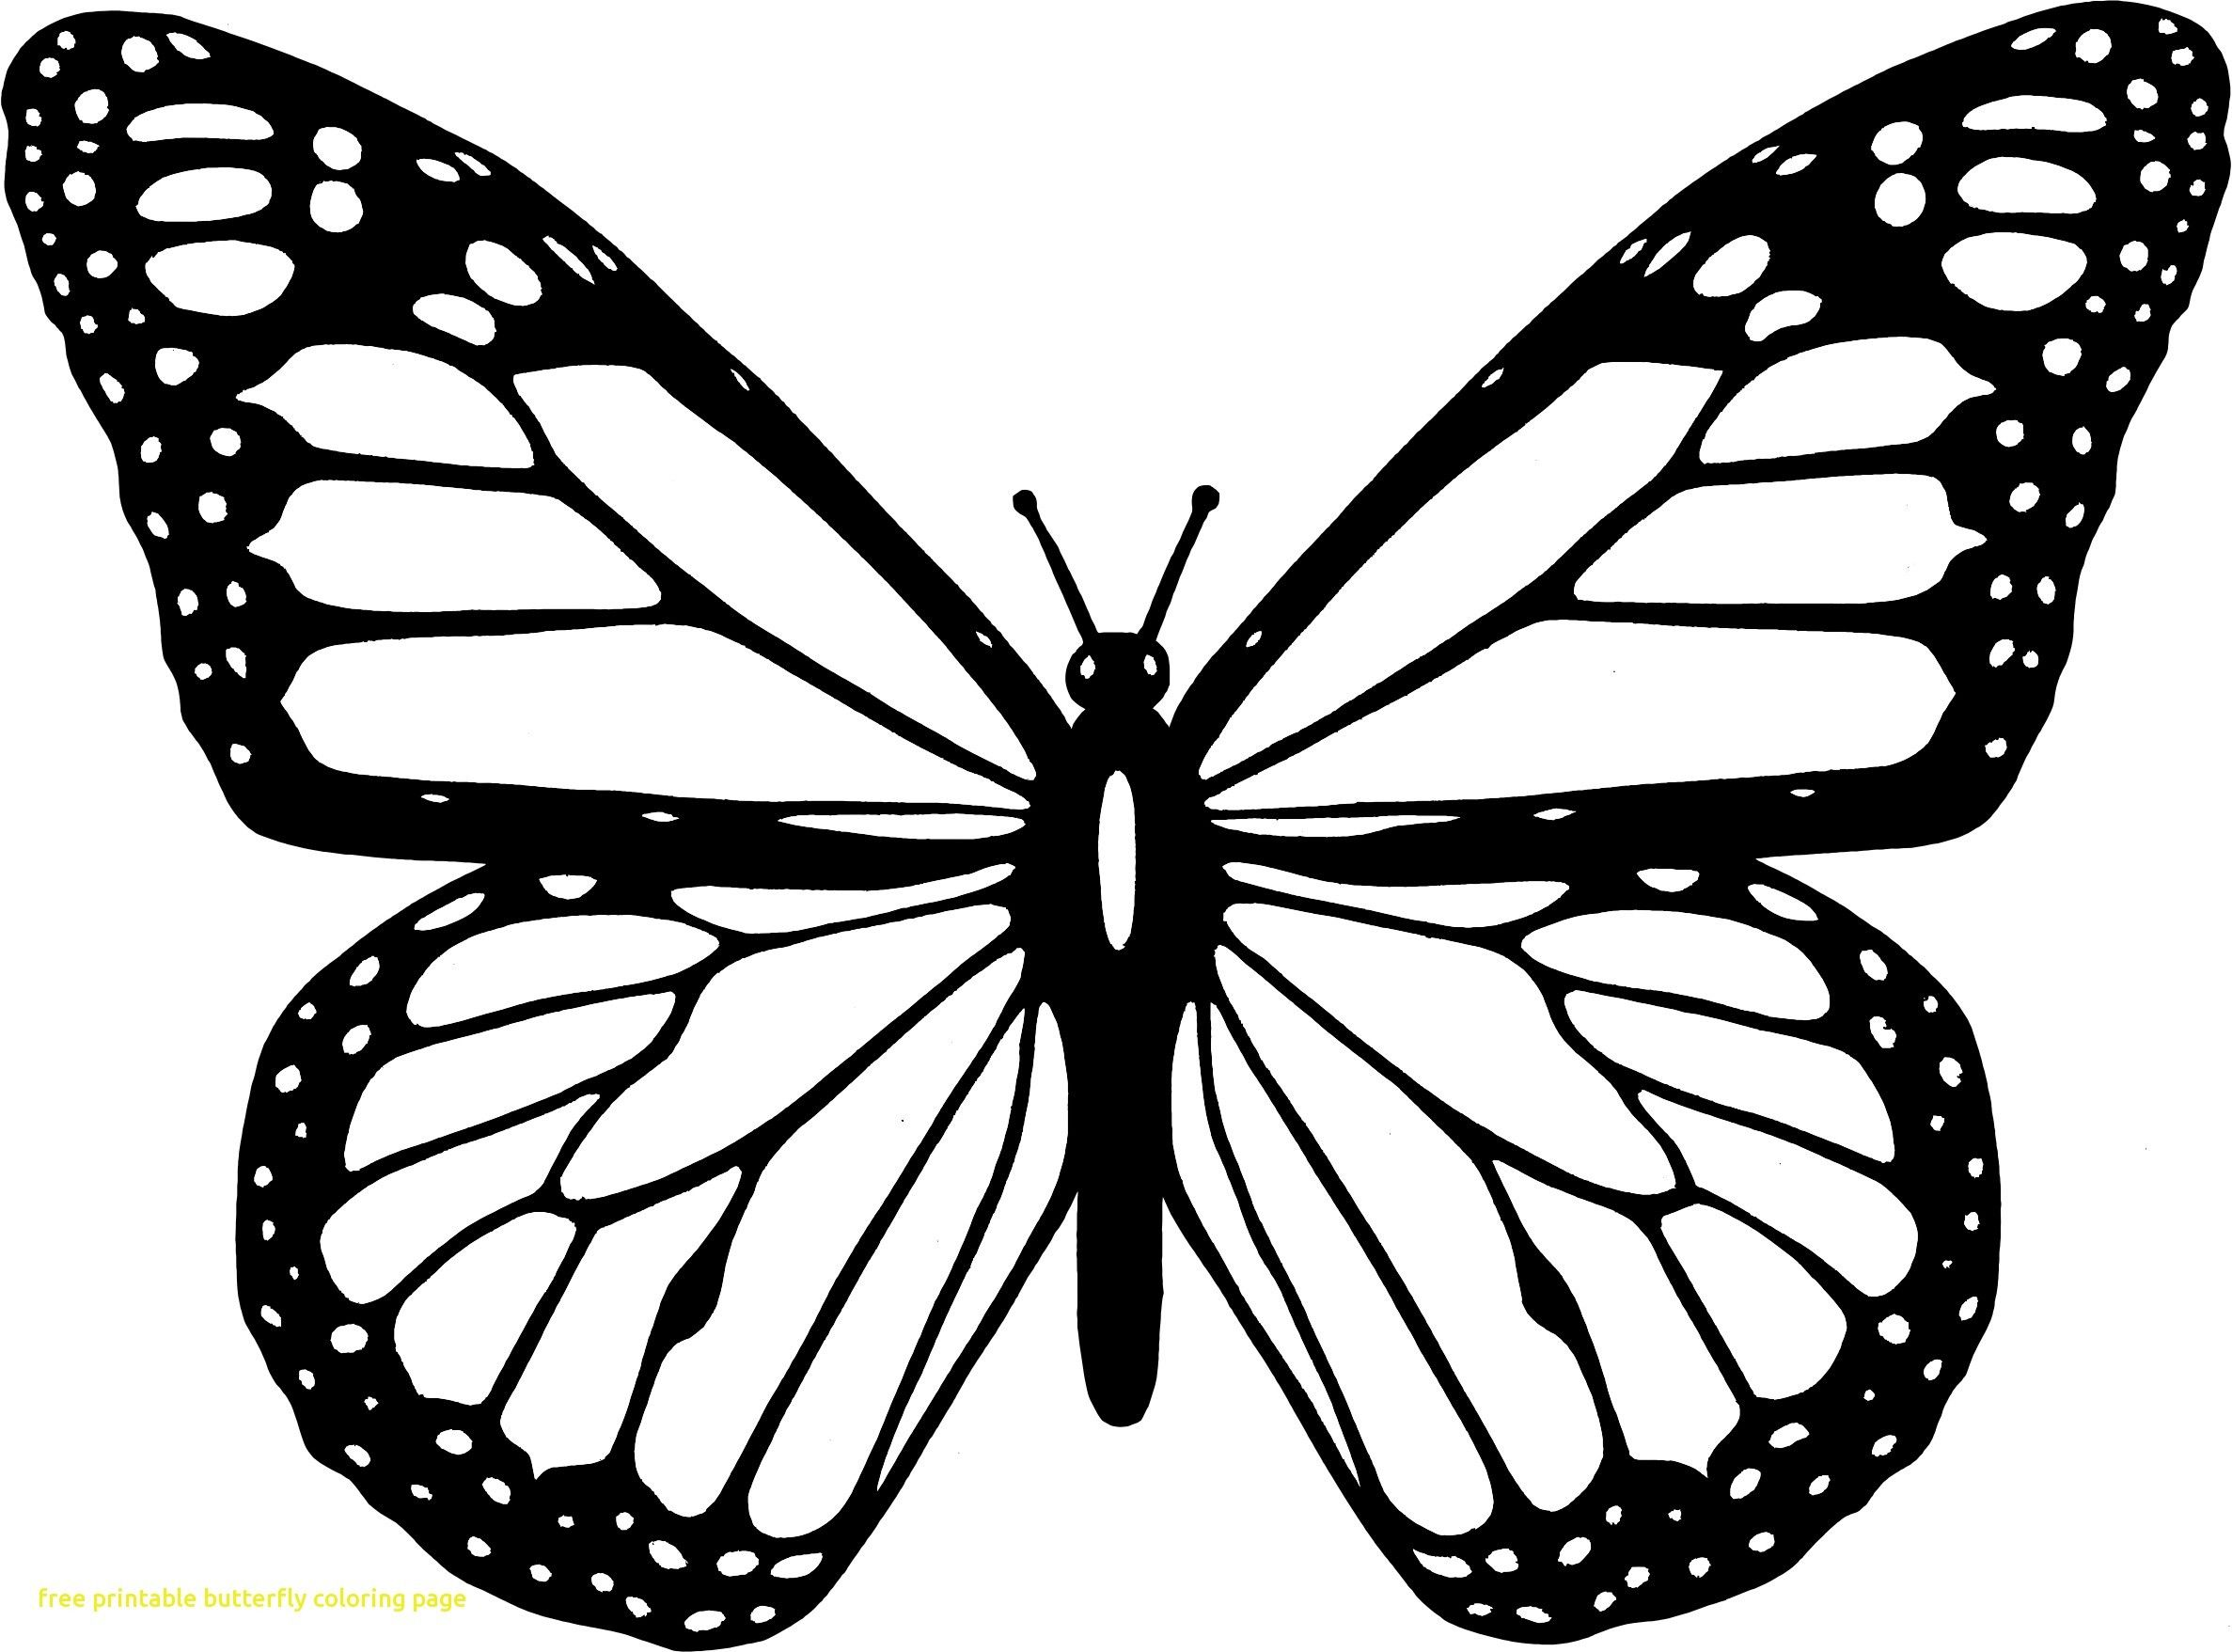 Coloring Page Of Butterfly New Easily Colouring Pages Butterfly Coloring Butterfly Clip Art Butterfly Outline Butterfly Coloring Page